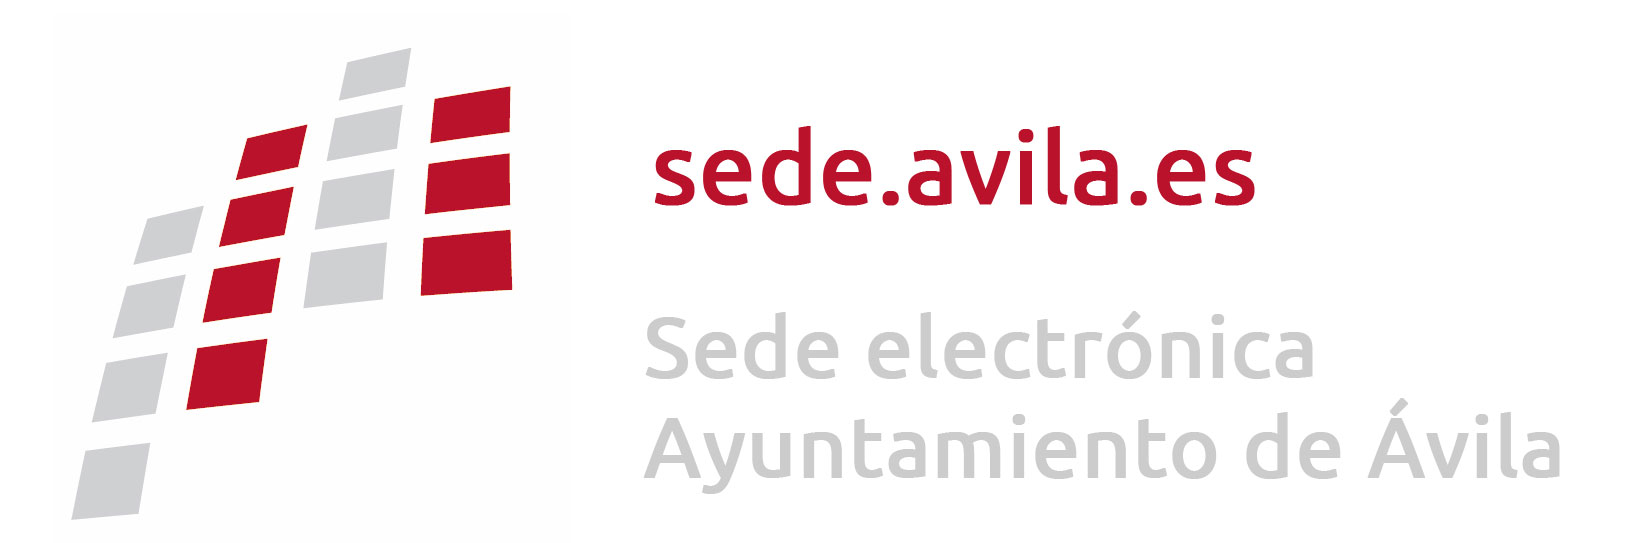 sede electronica banner